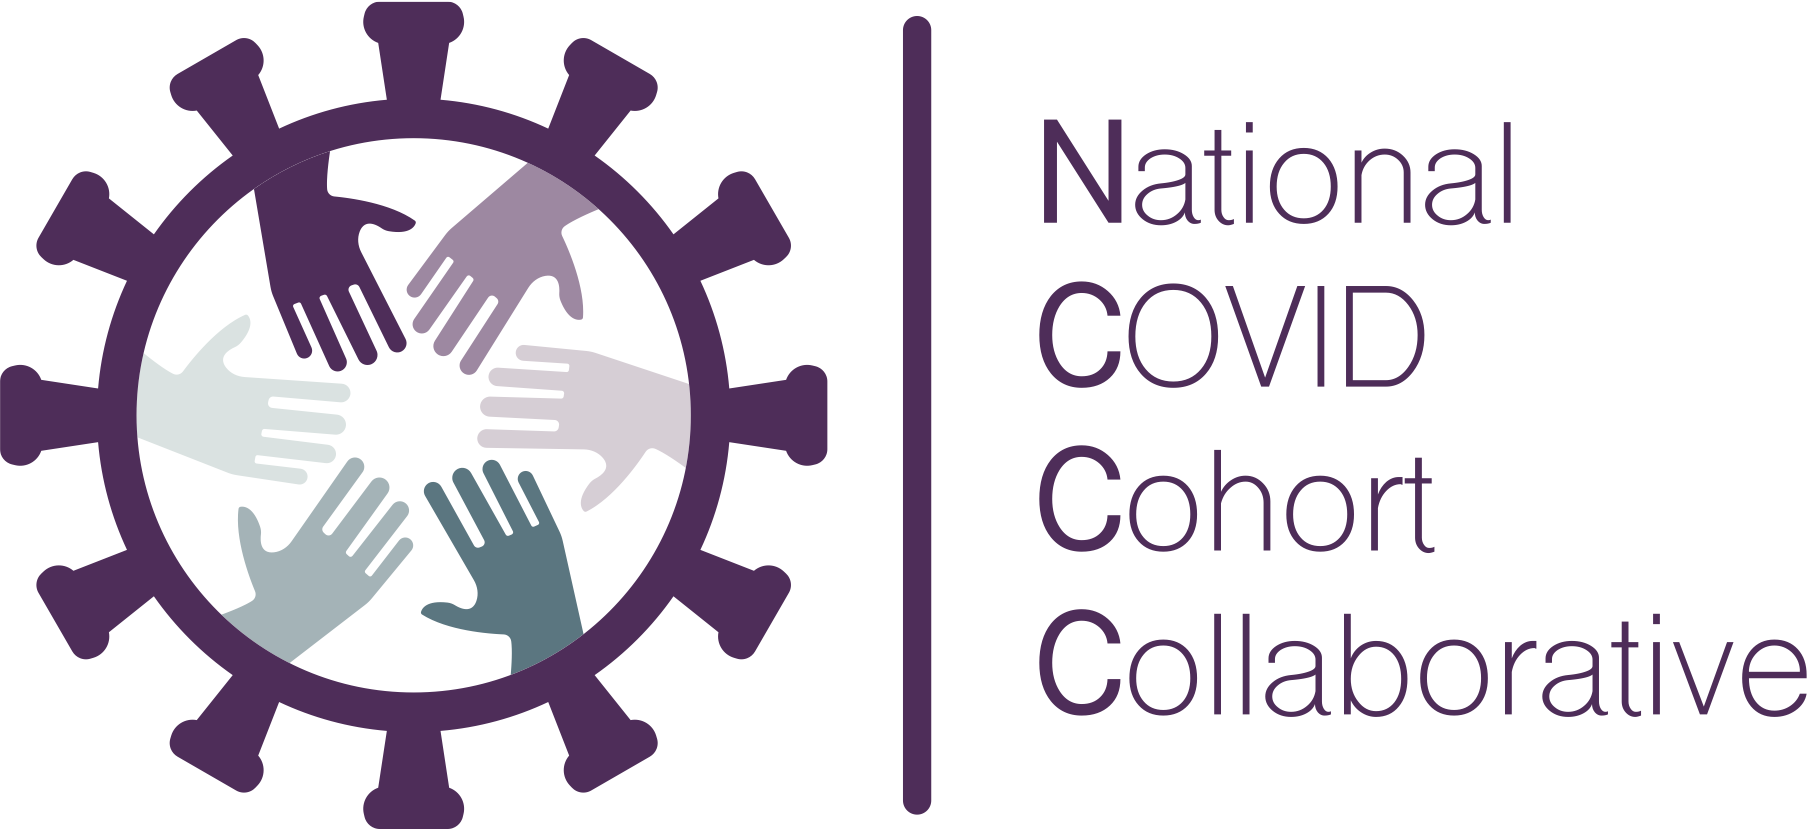 National COVID Cohort Collaborative (N3C)